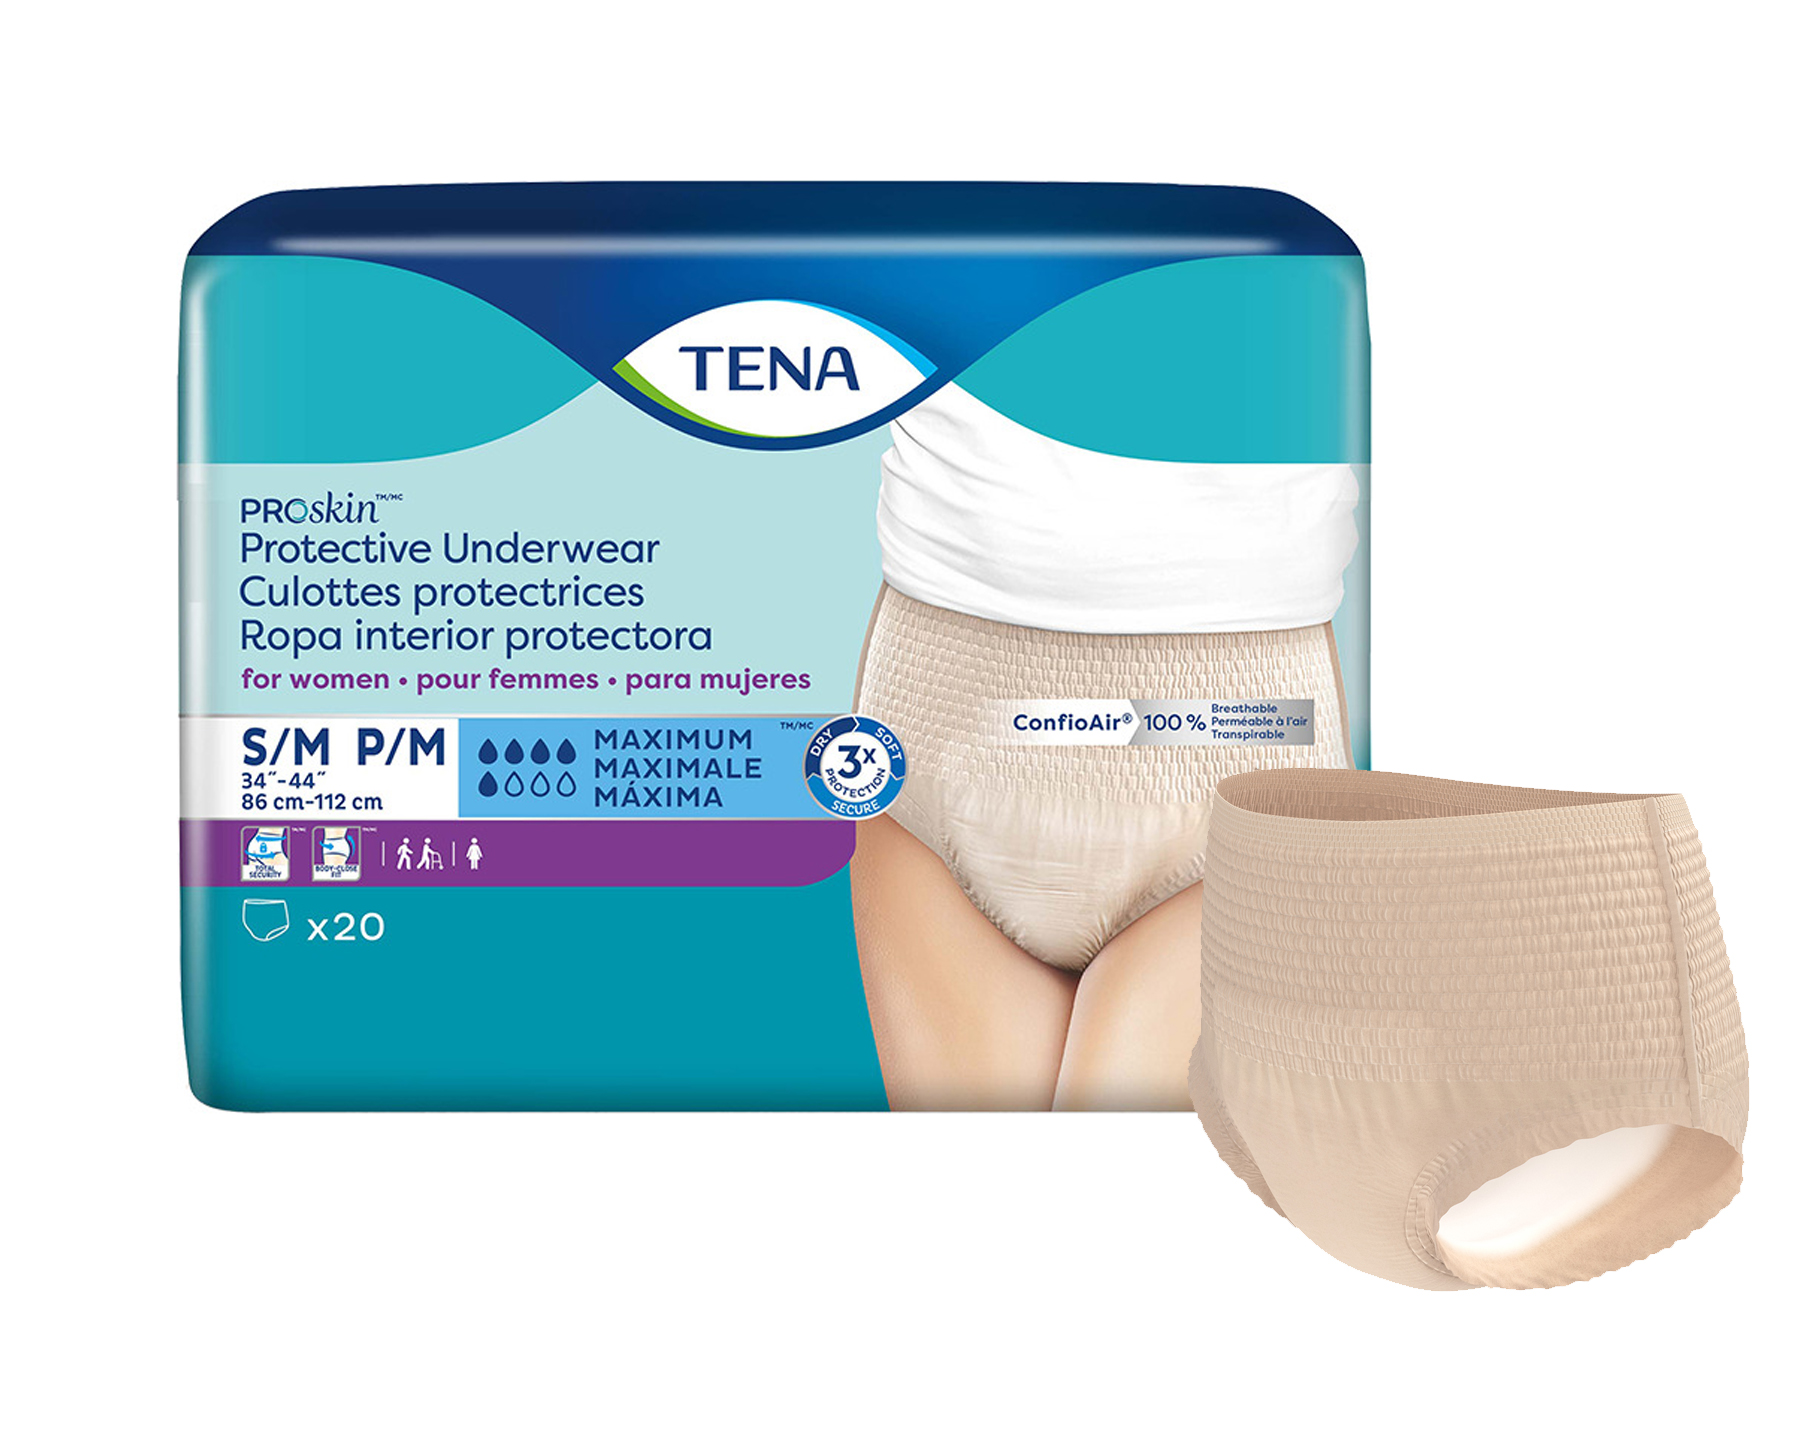 TENA ProSkin Protective Incontinence Underwear for Women, Maximum Absorbency